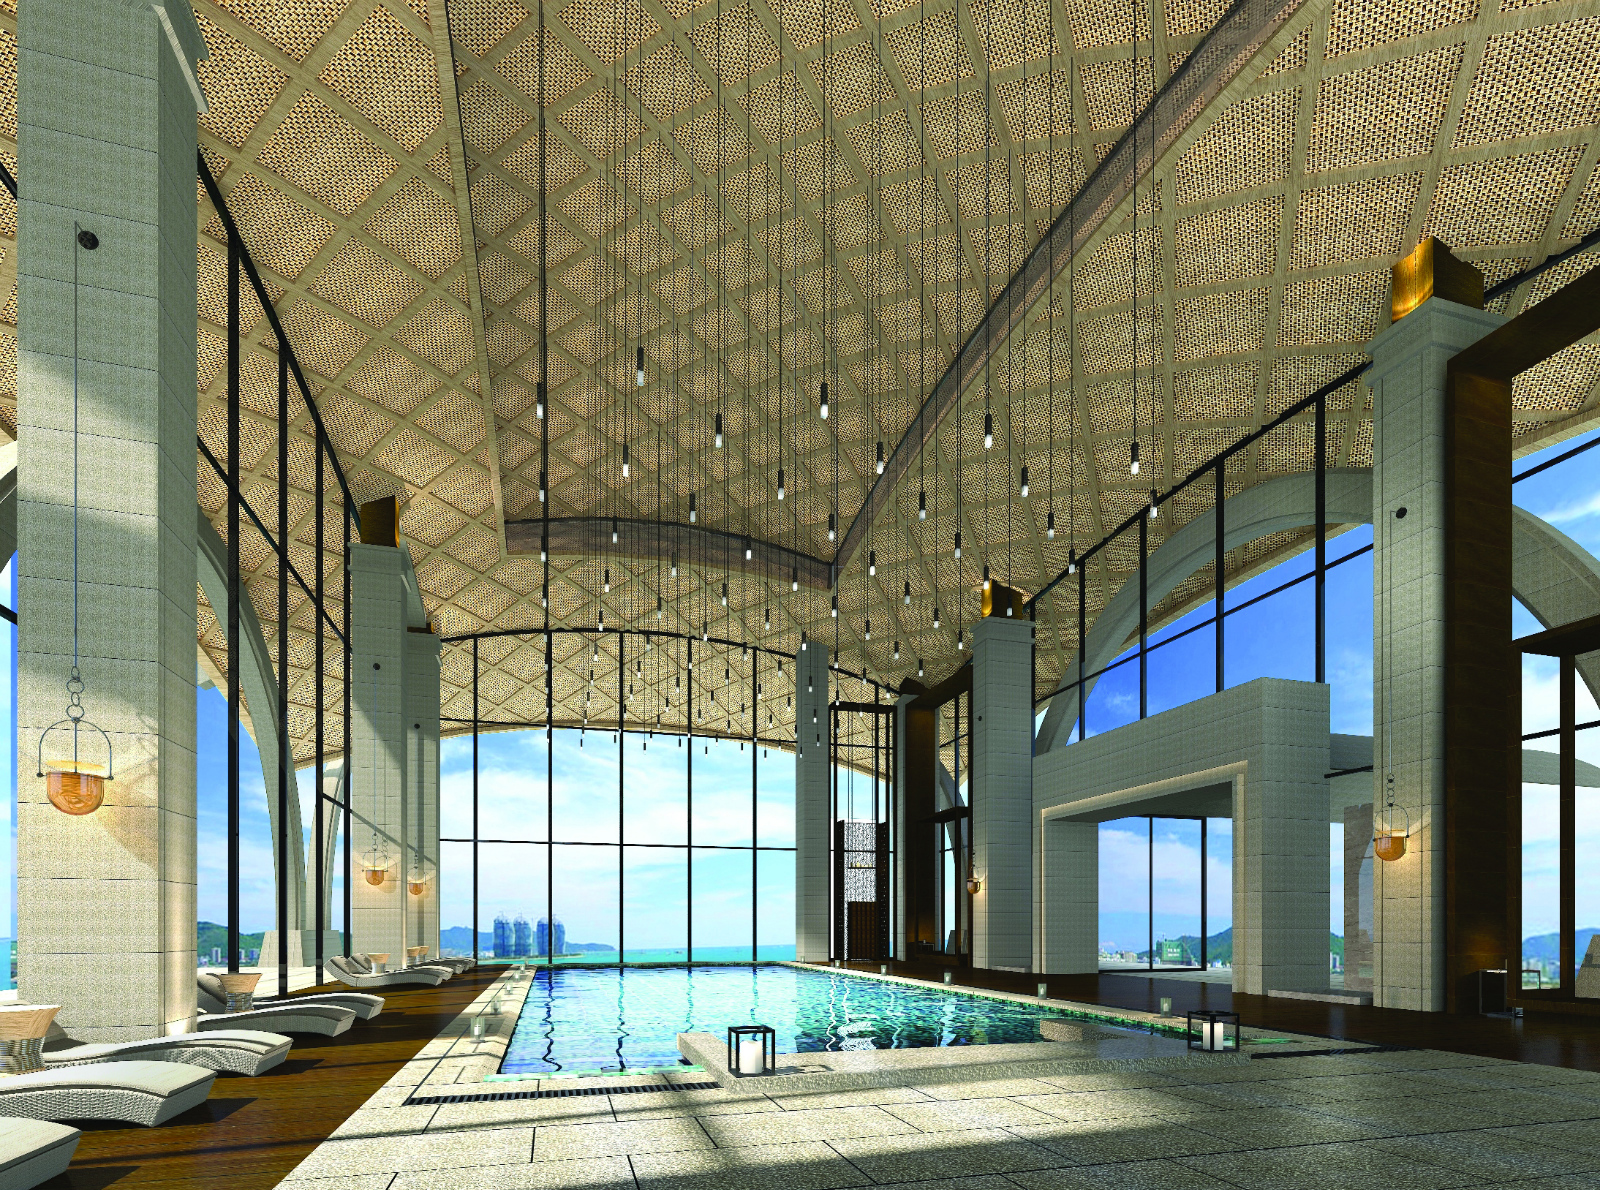 Doubletree resort by hilton celebrates the opening of its first hotel in yunnan china